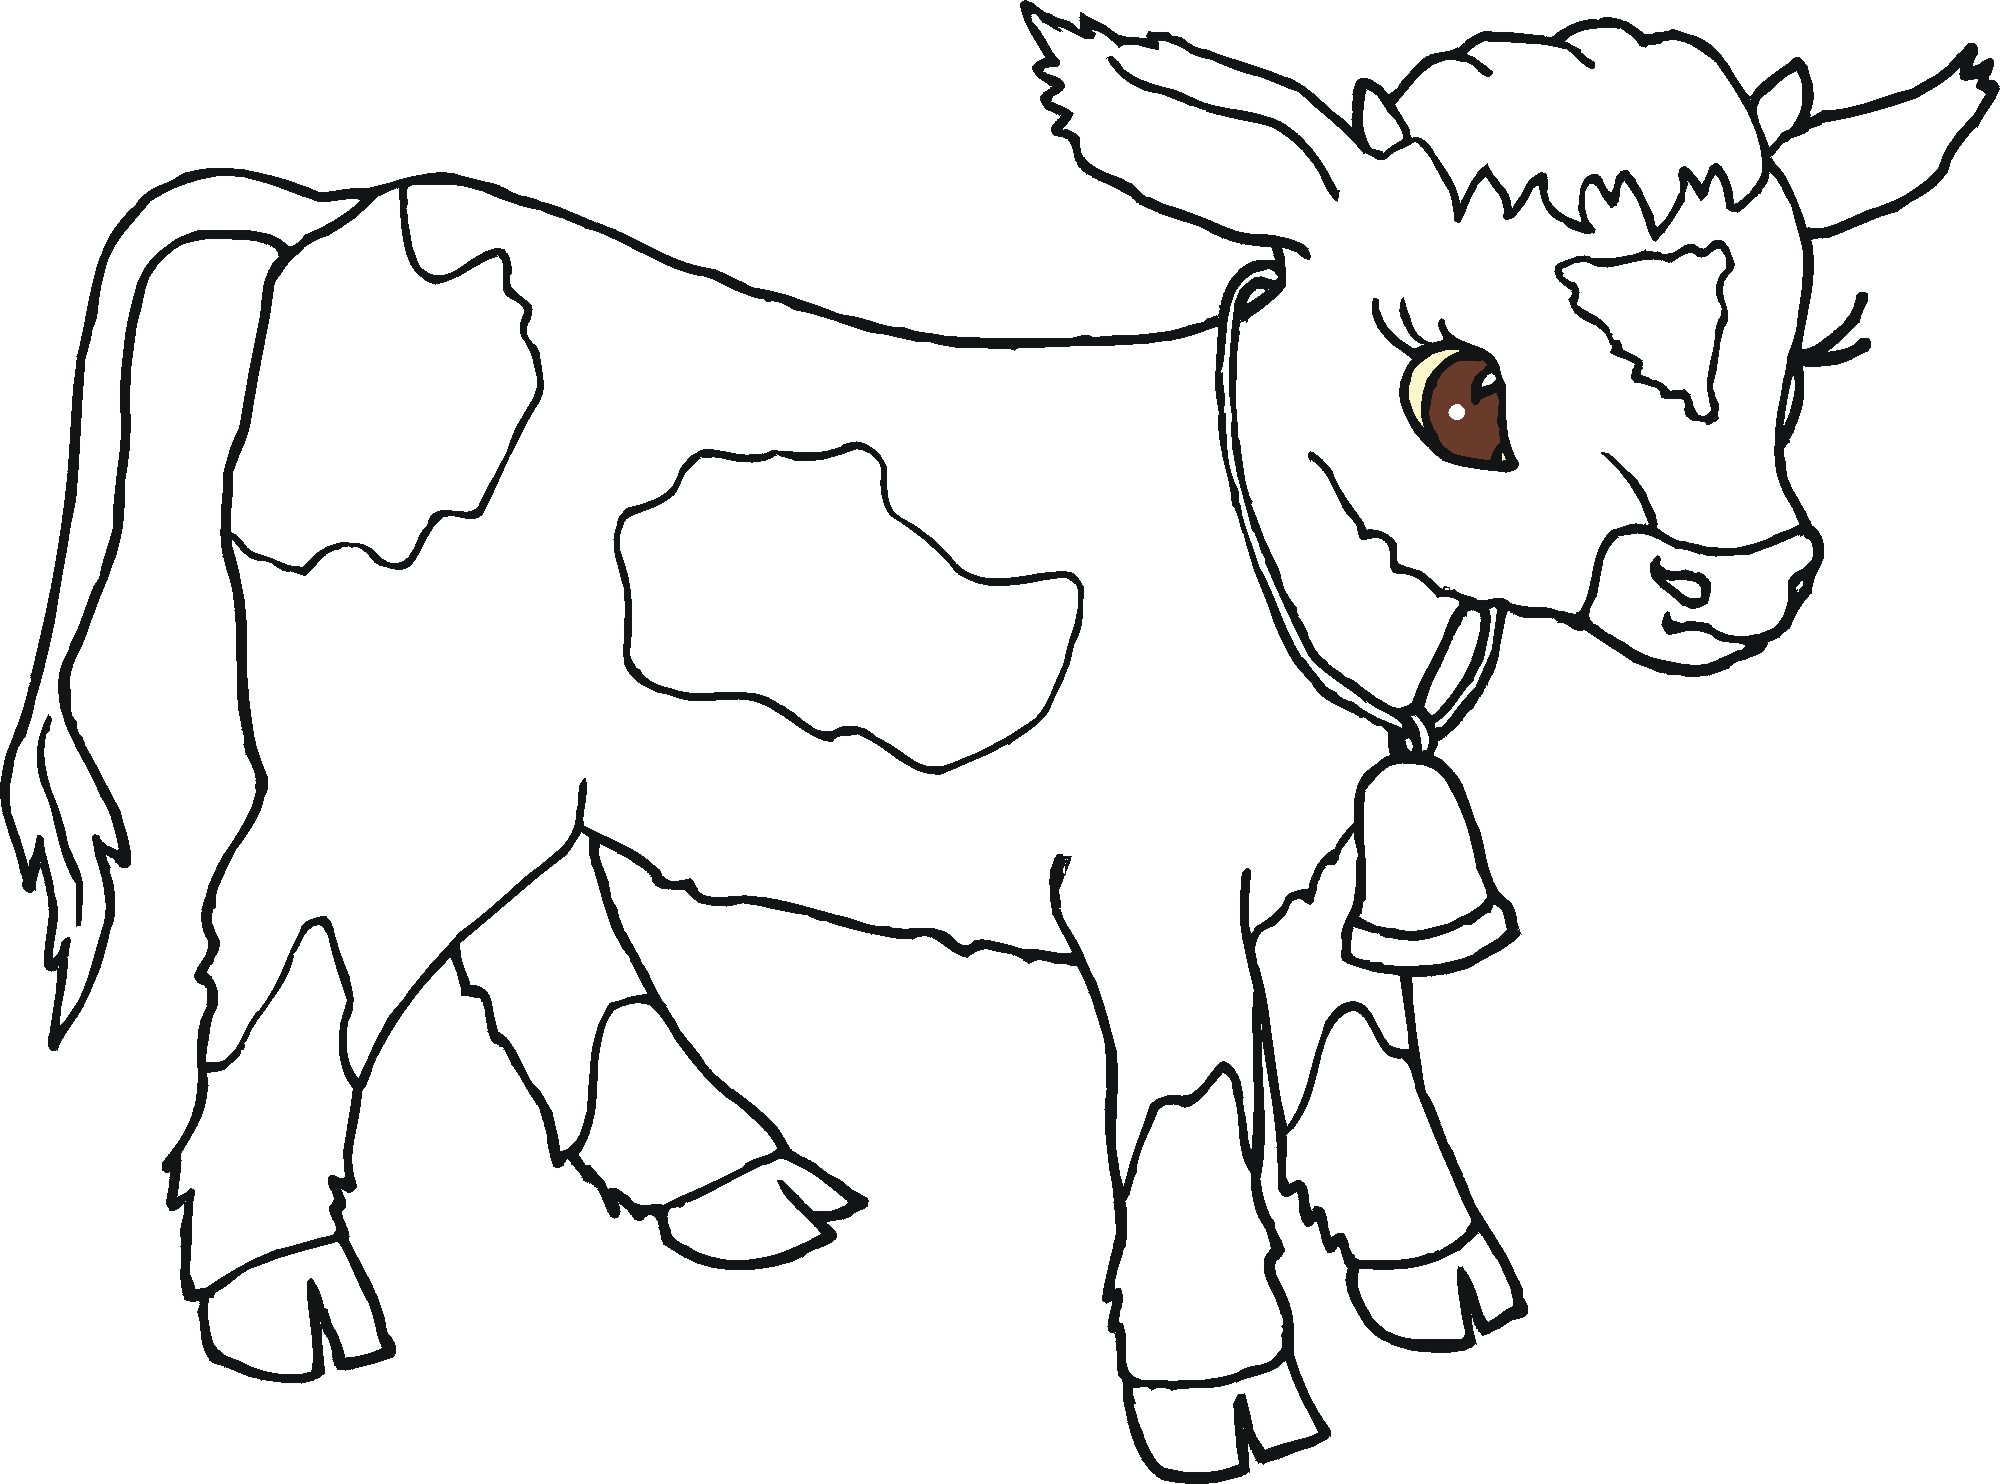 colouring pages of cow dulemba coloring page tuesday moo cow of colouring cow pages